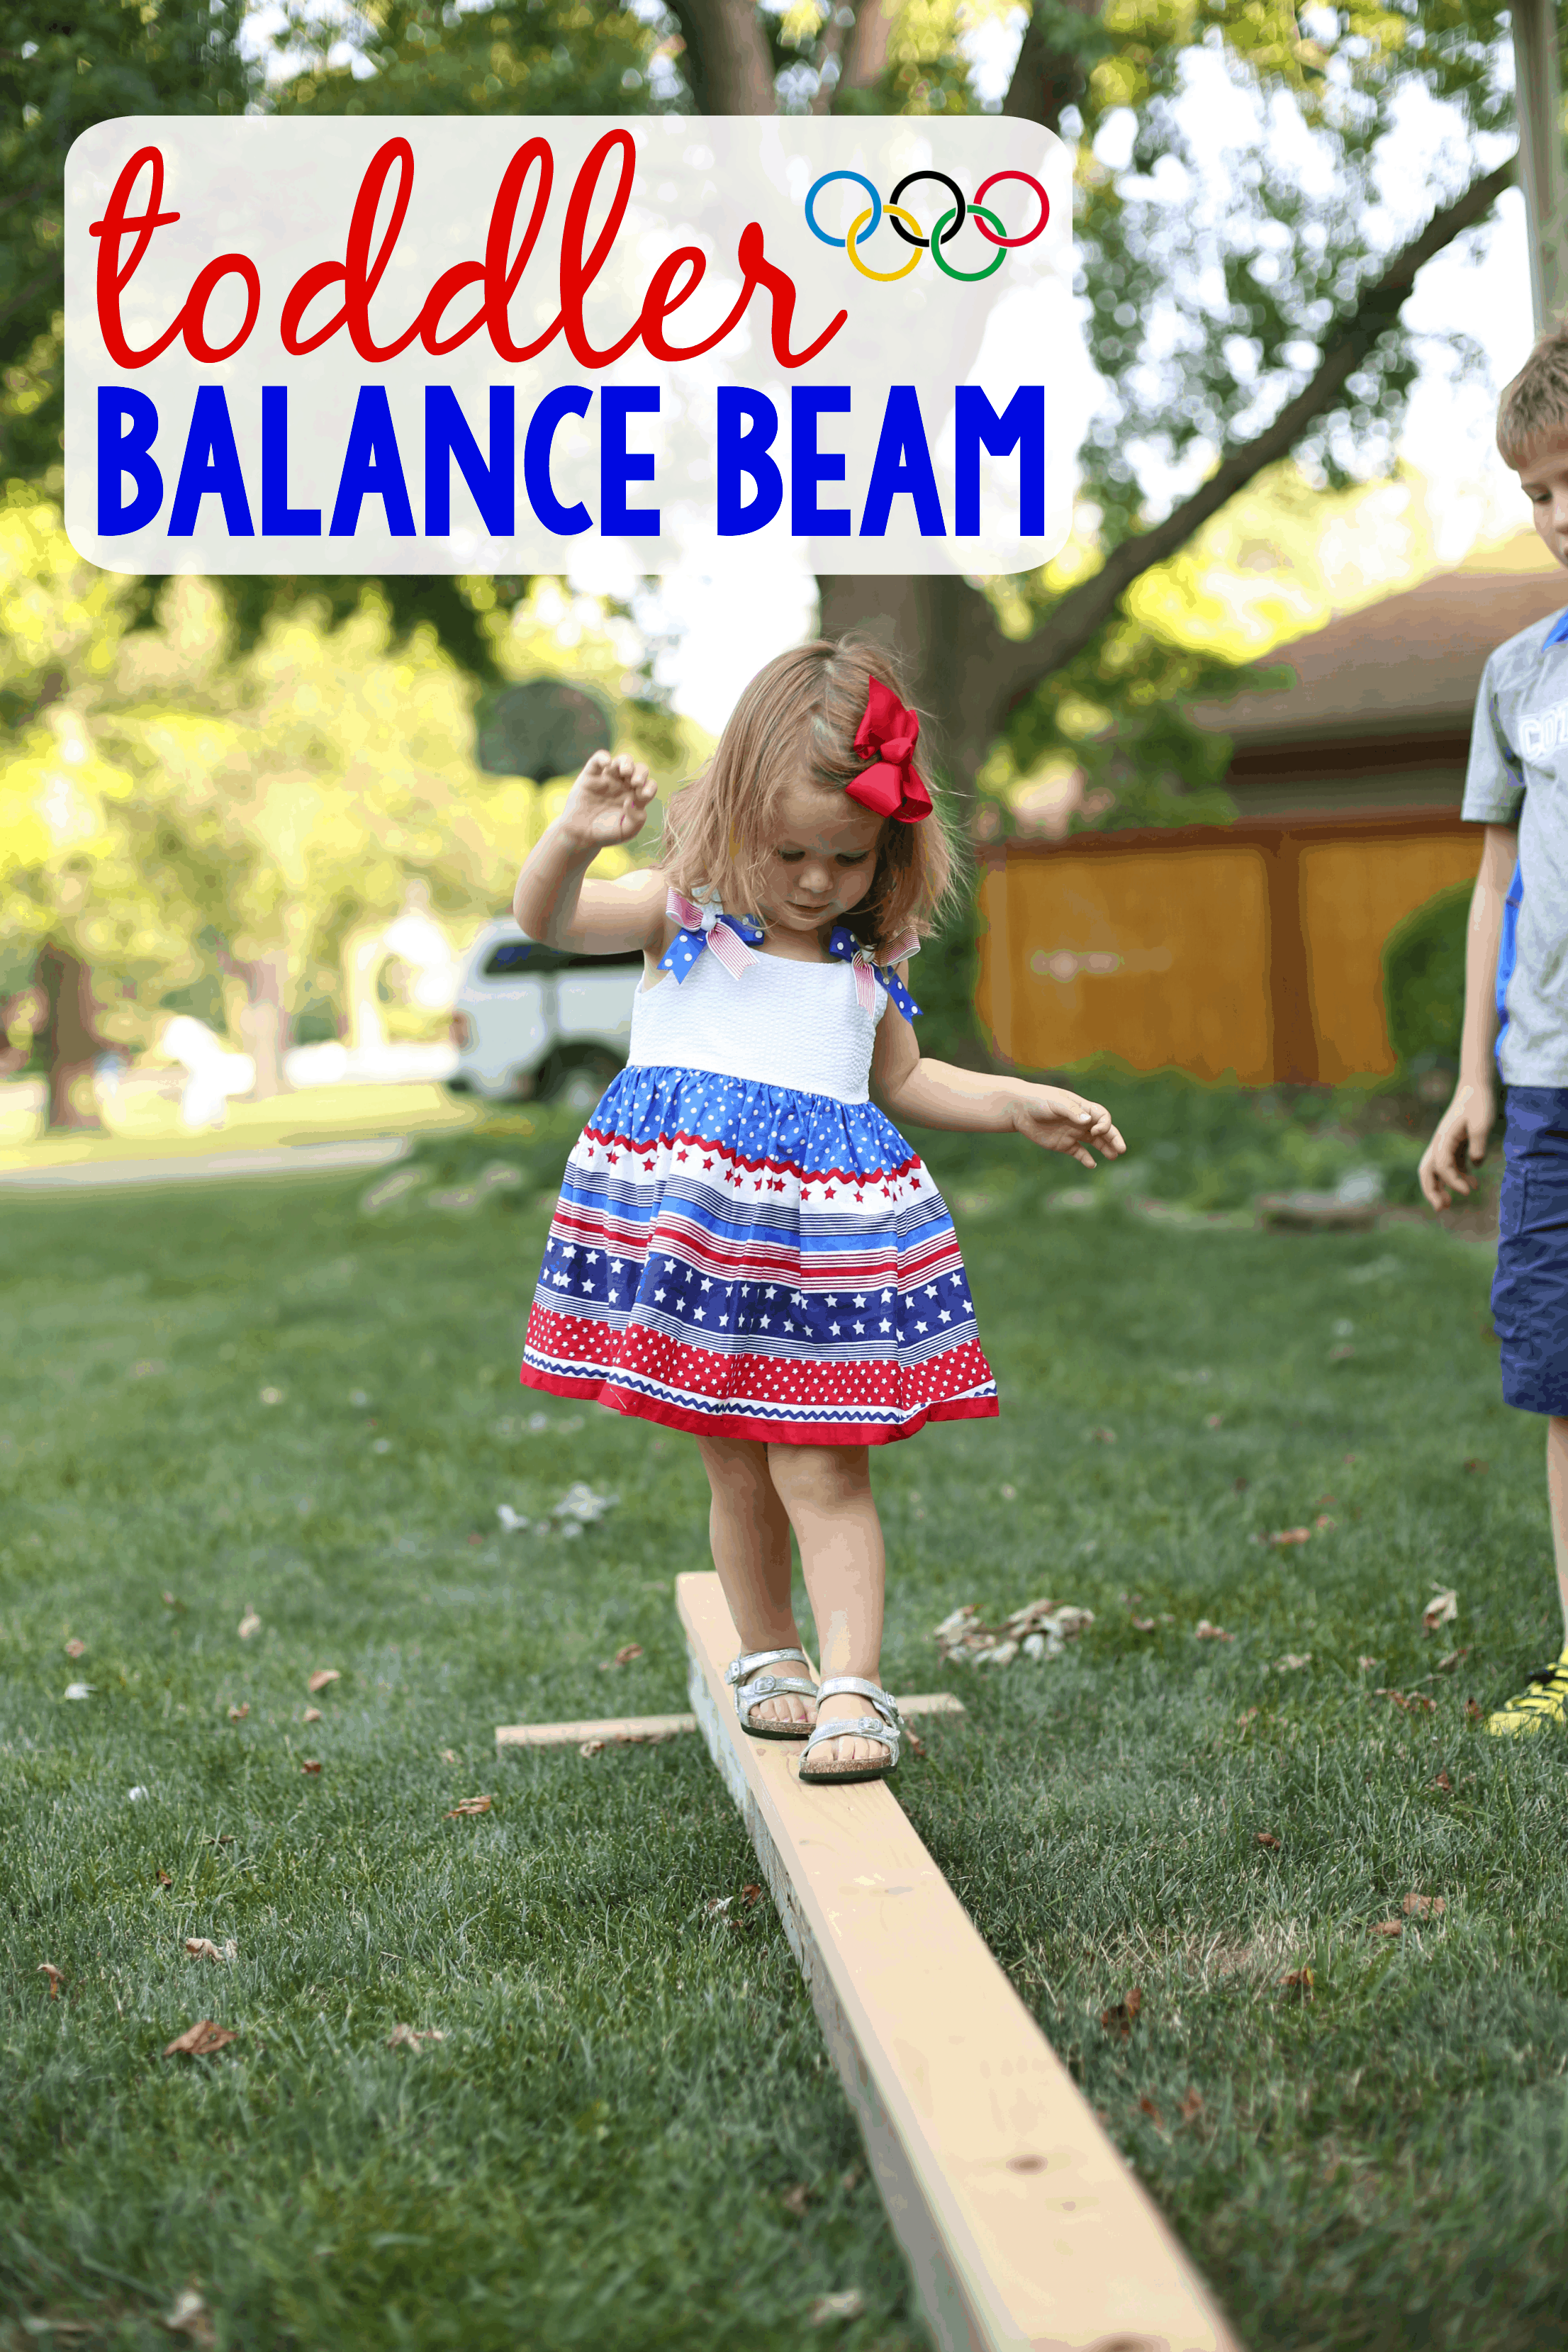 Toddler Balance Beam - I Can Teach My Child! on book for toddlers, baby for toddlers, gymnastics for toddlers, games for toddlers, brush for toddlers, spring boards for toddlers, floor for toddlers, steps for toddlers, ropes for toddlers, tumbling for toddlers, zip line for toddlers, hopscotch for toddlers, ballet for toddlers, bath for toddlers, climbing for toddlers, baseball for toddlers, boxes for toddlers, rings for toddlers, chalk for toddlers, swimming for toddlers,